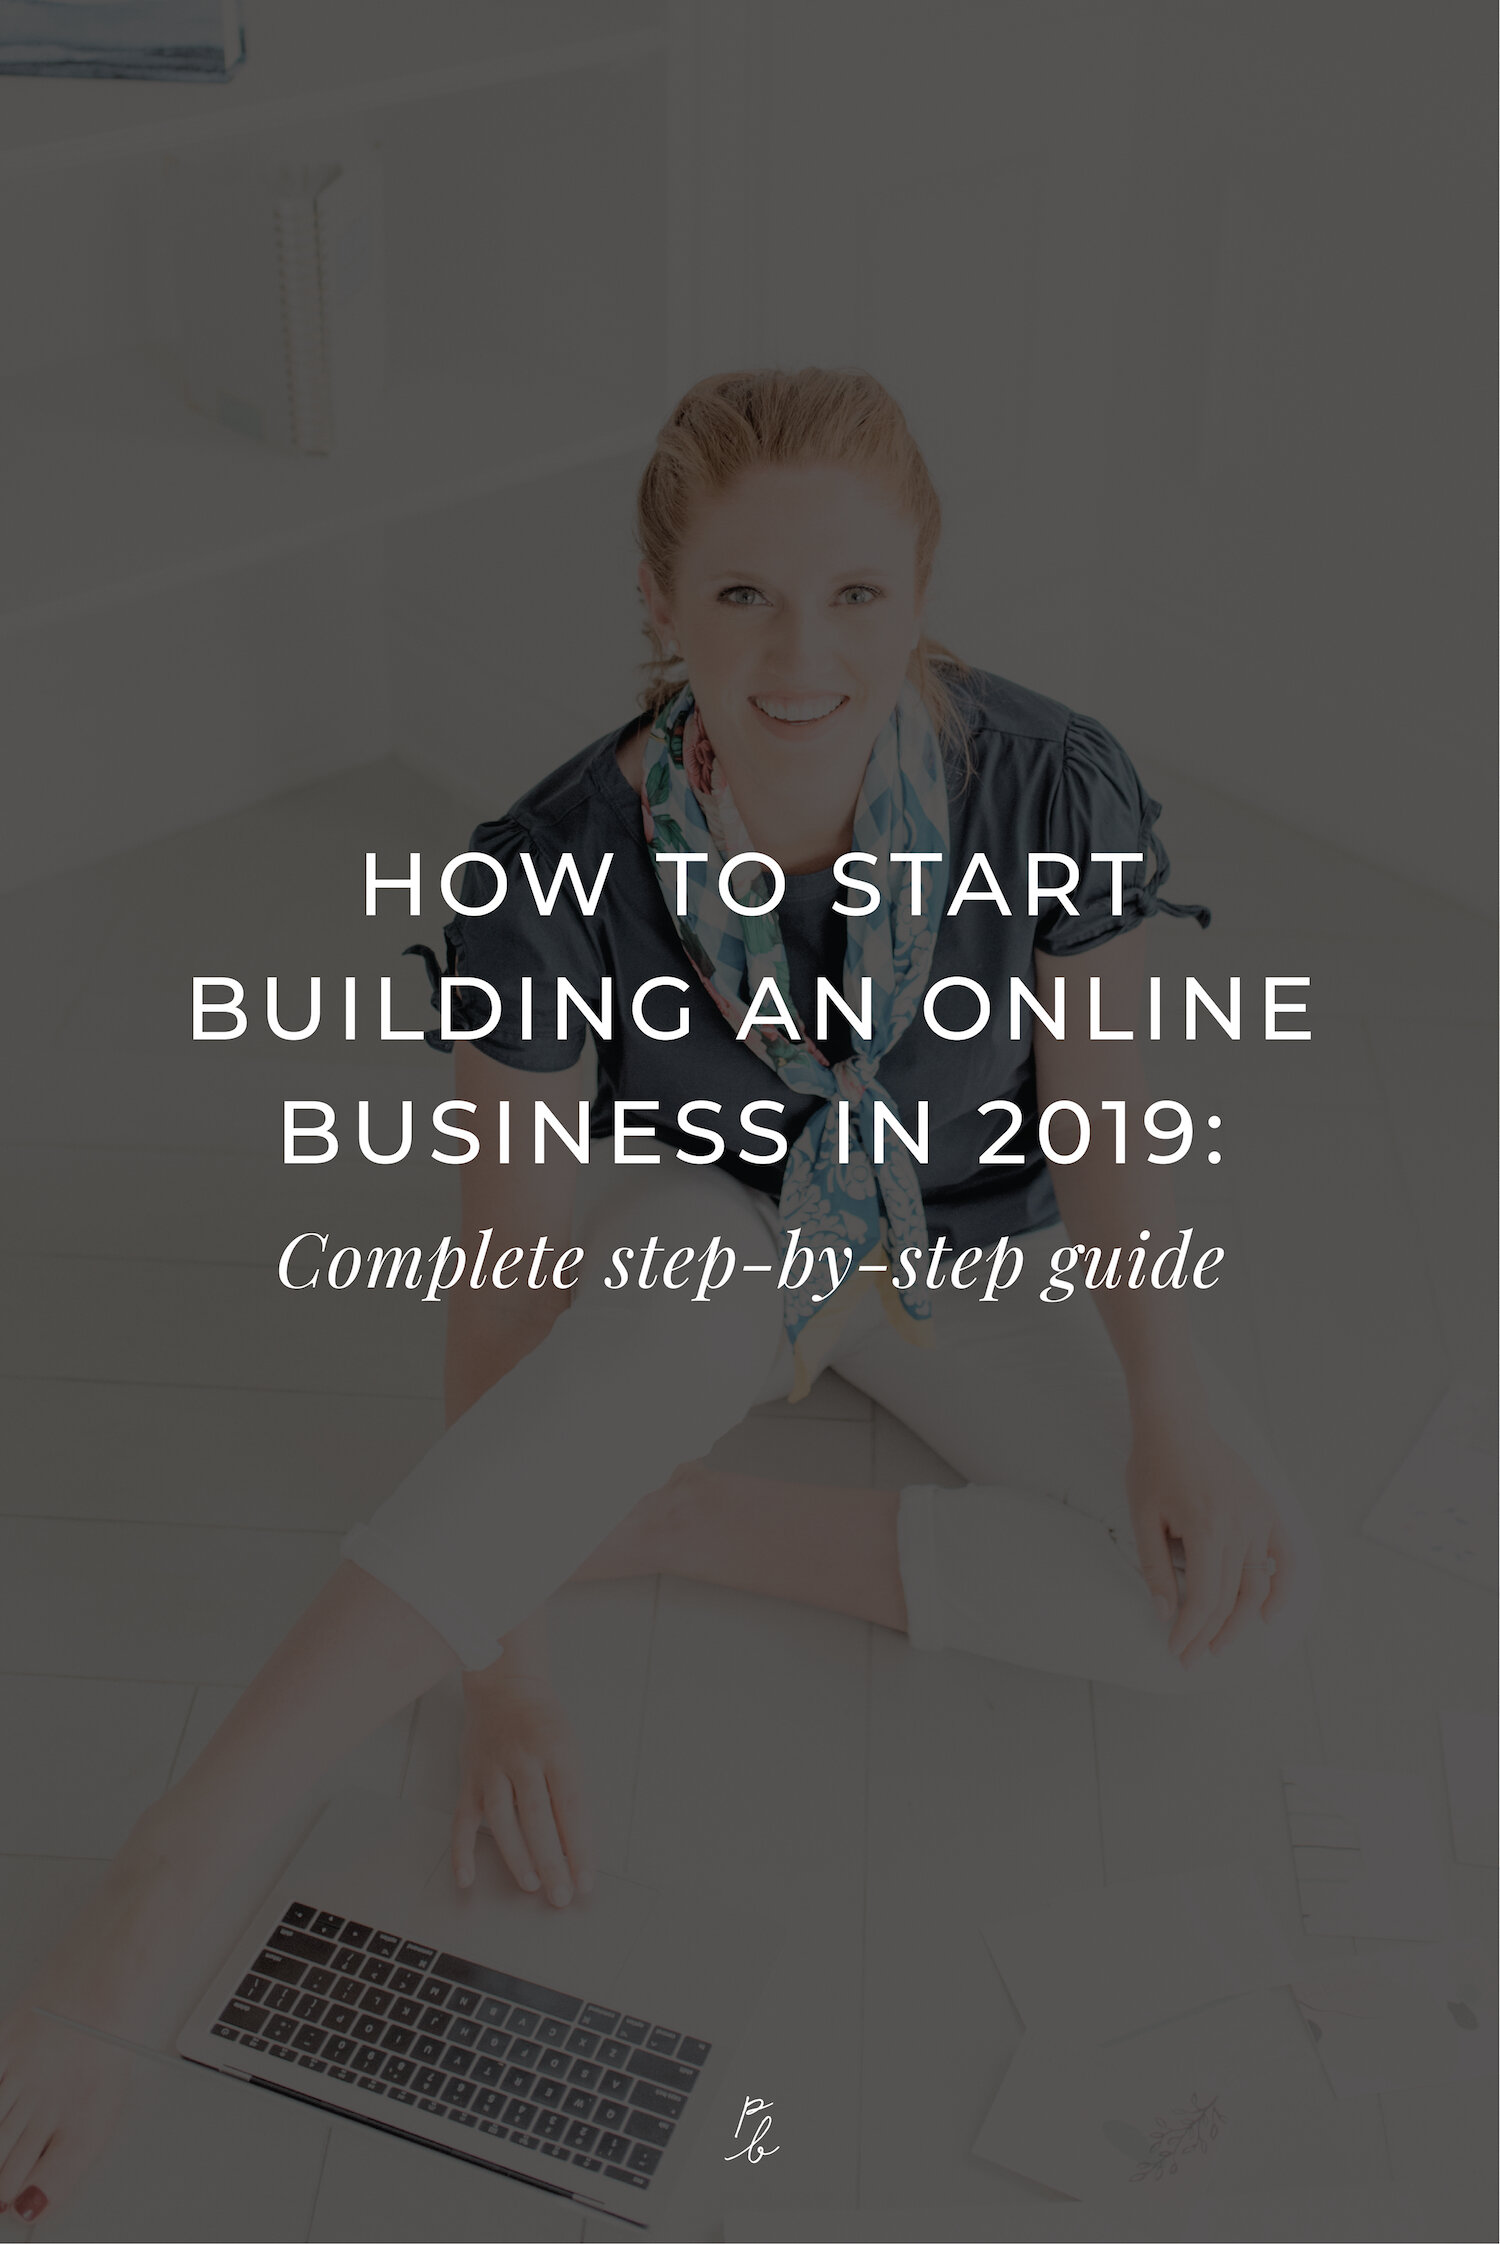 How to start an online business in 2019- Complete step-by-step guide-02.jpeg